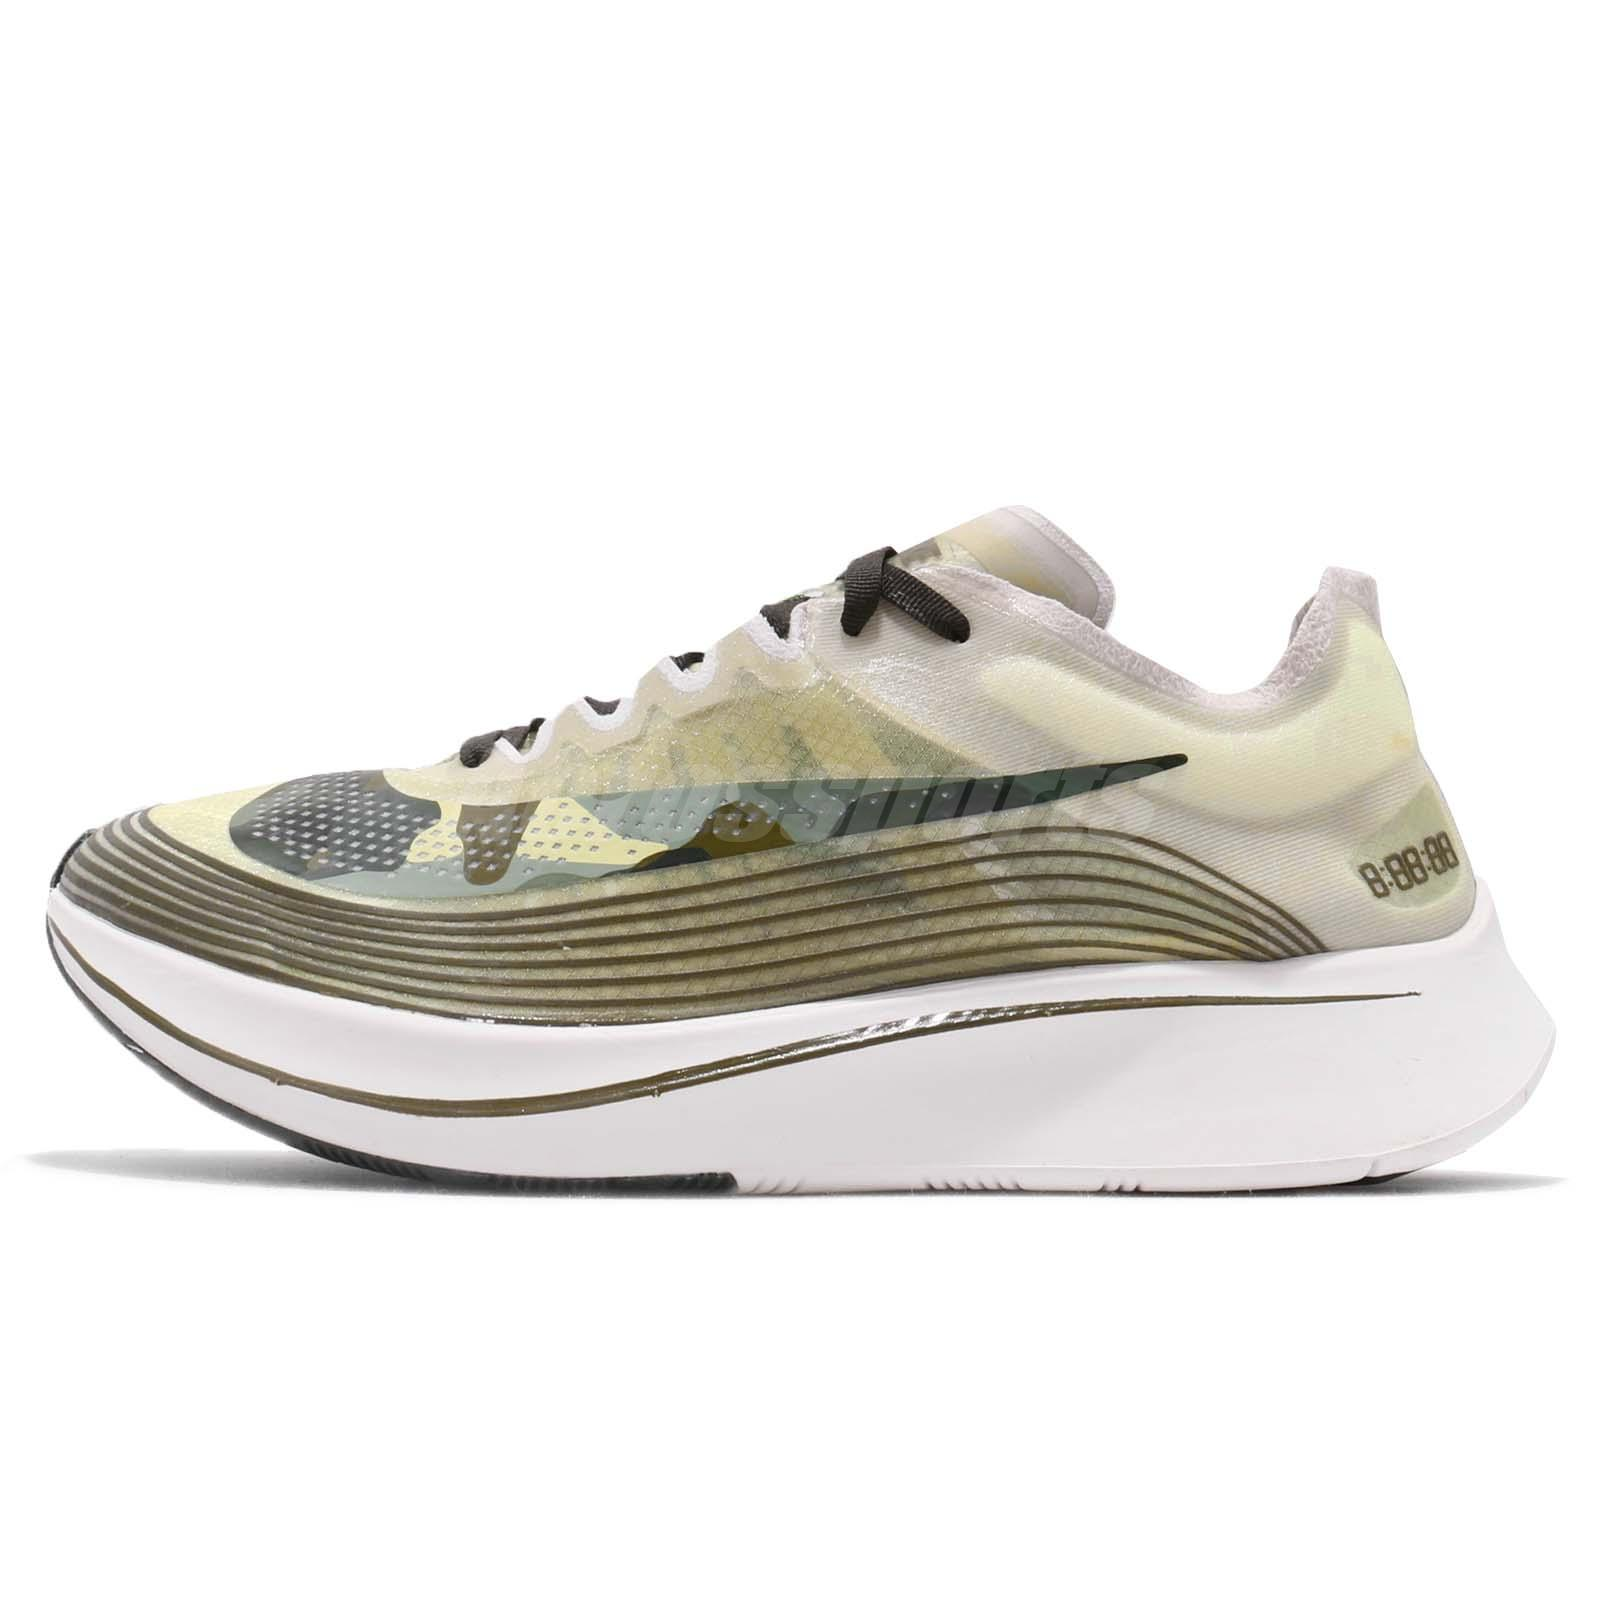 a29c3b25cfa7 Nike Zoom Fly SP Light Bone Black Olive Green Camo Mens Running Shoes  AV8074-001